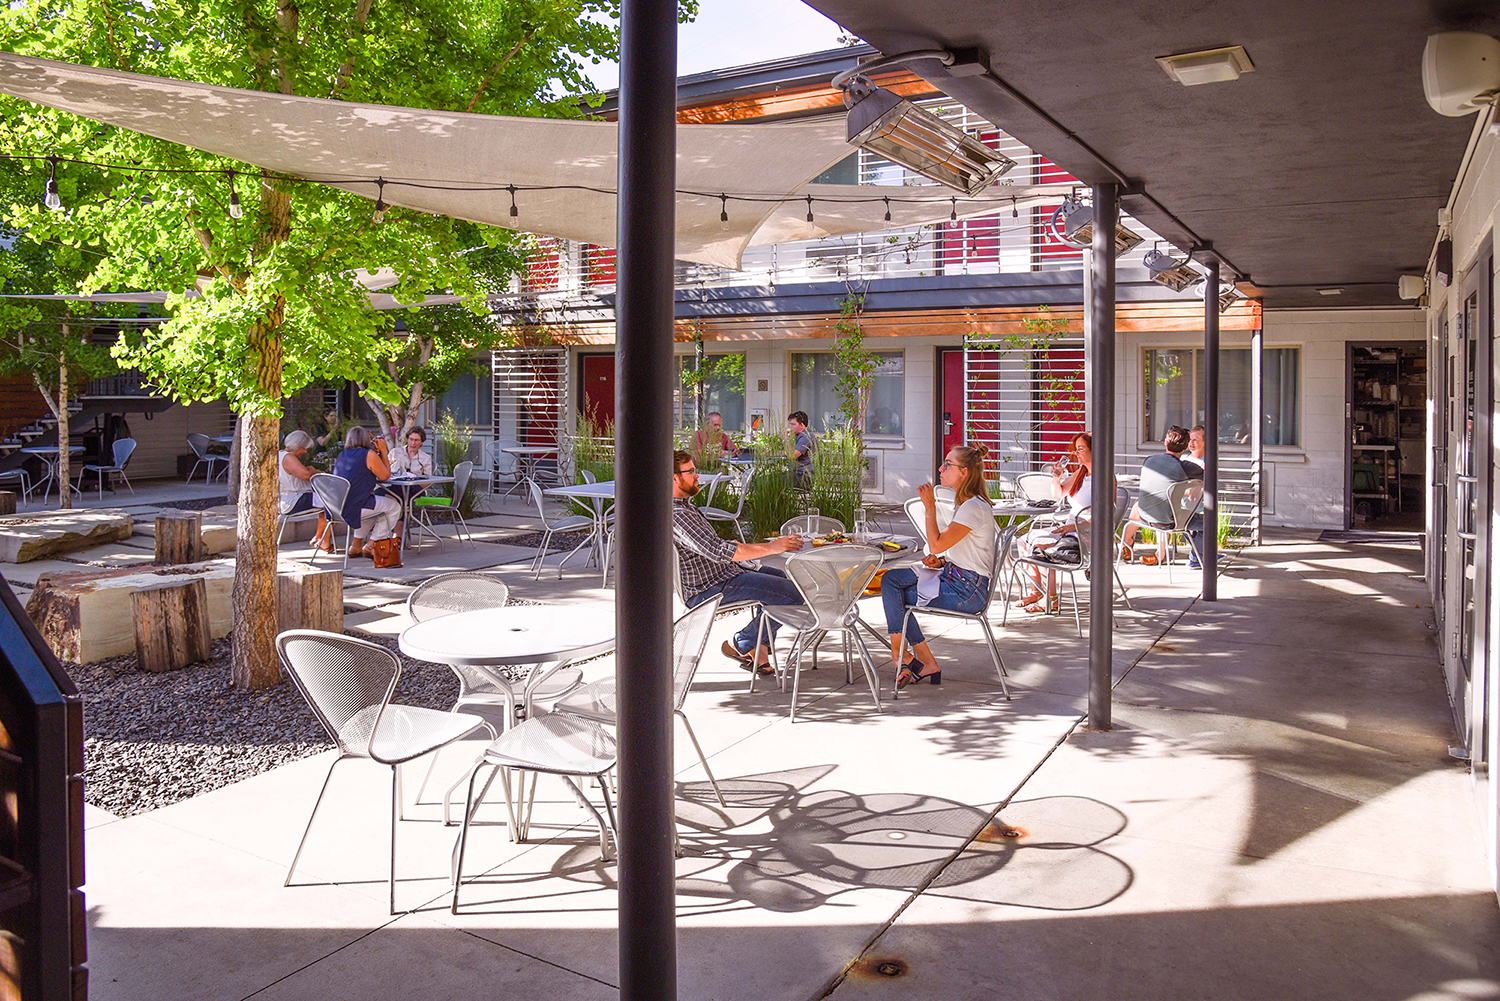 View of the Modern Hotel and Bar courtyard from the southeast corner of the patio. Several metal mesh tables with matching cherner-like chairs are occupied by patrons enjoying craft cocktails and appetizers. Reddish-orange hotel room doors are visible surrounding the courtyard. Ginkgo trees and sails provide shade.